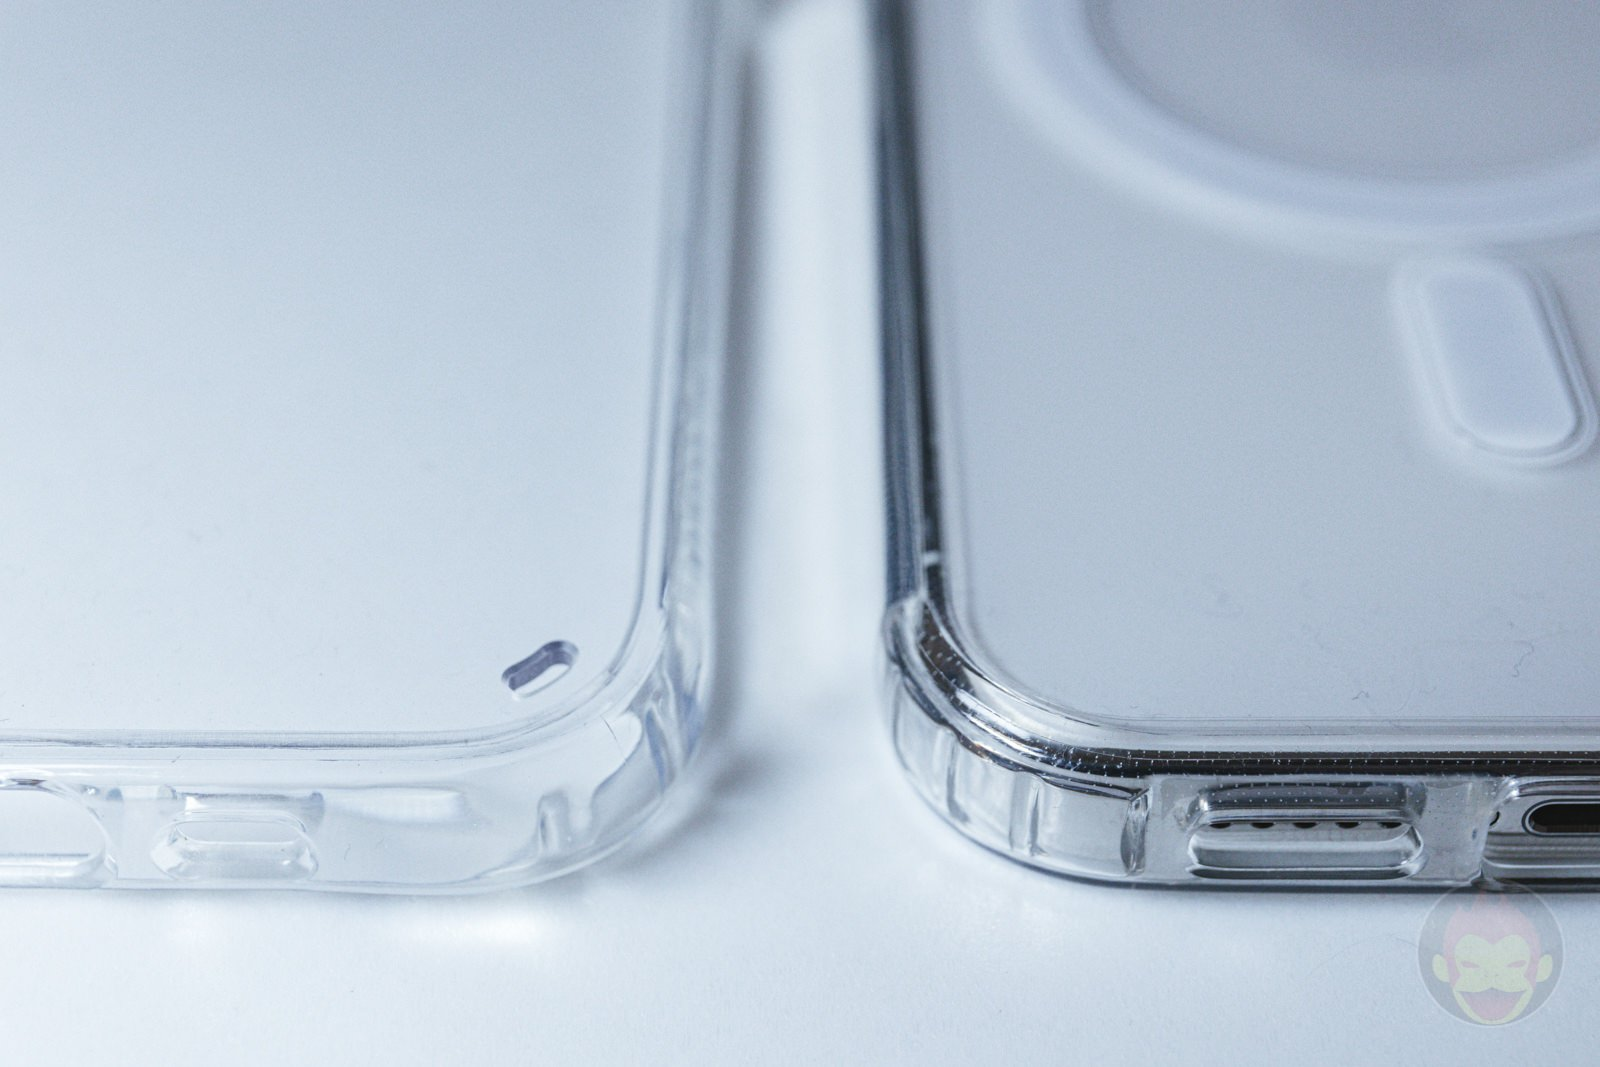 ZNX ZENIX iPhone12Pro Clear MagSafe Case Review 01